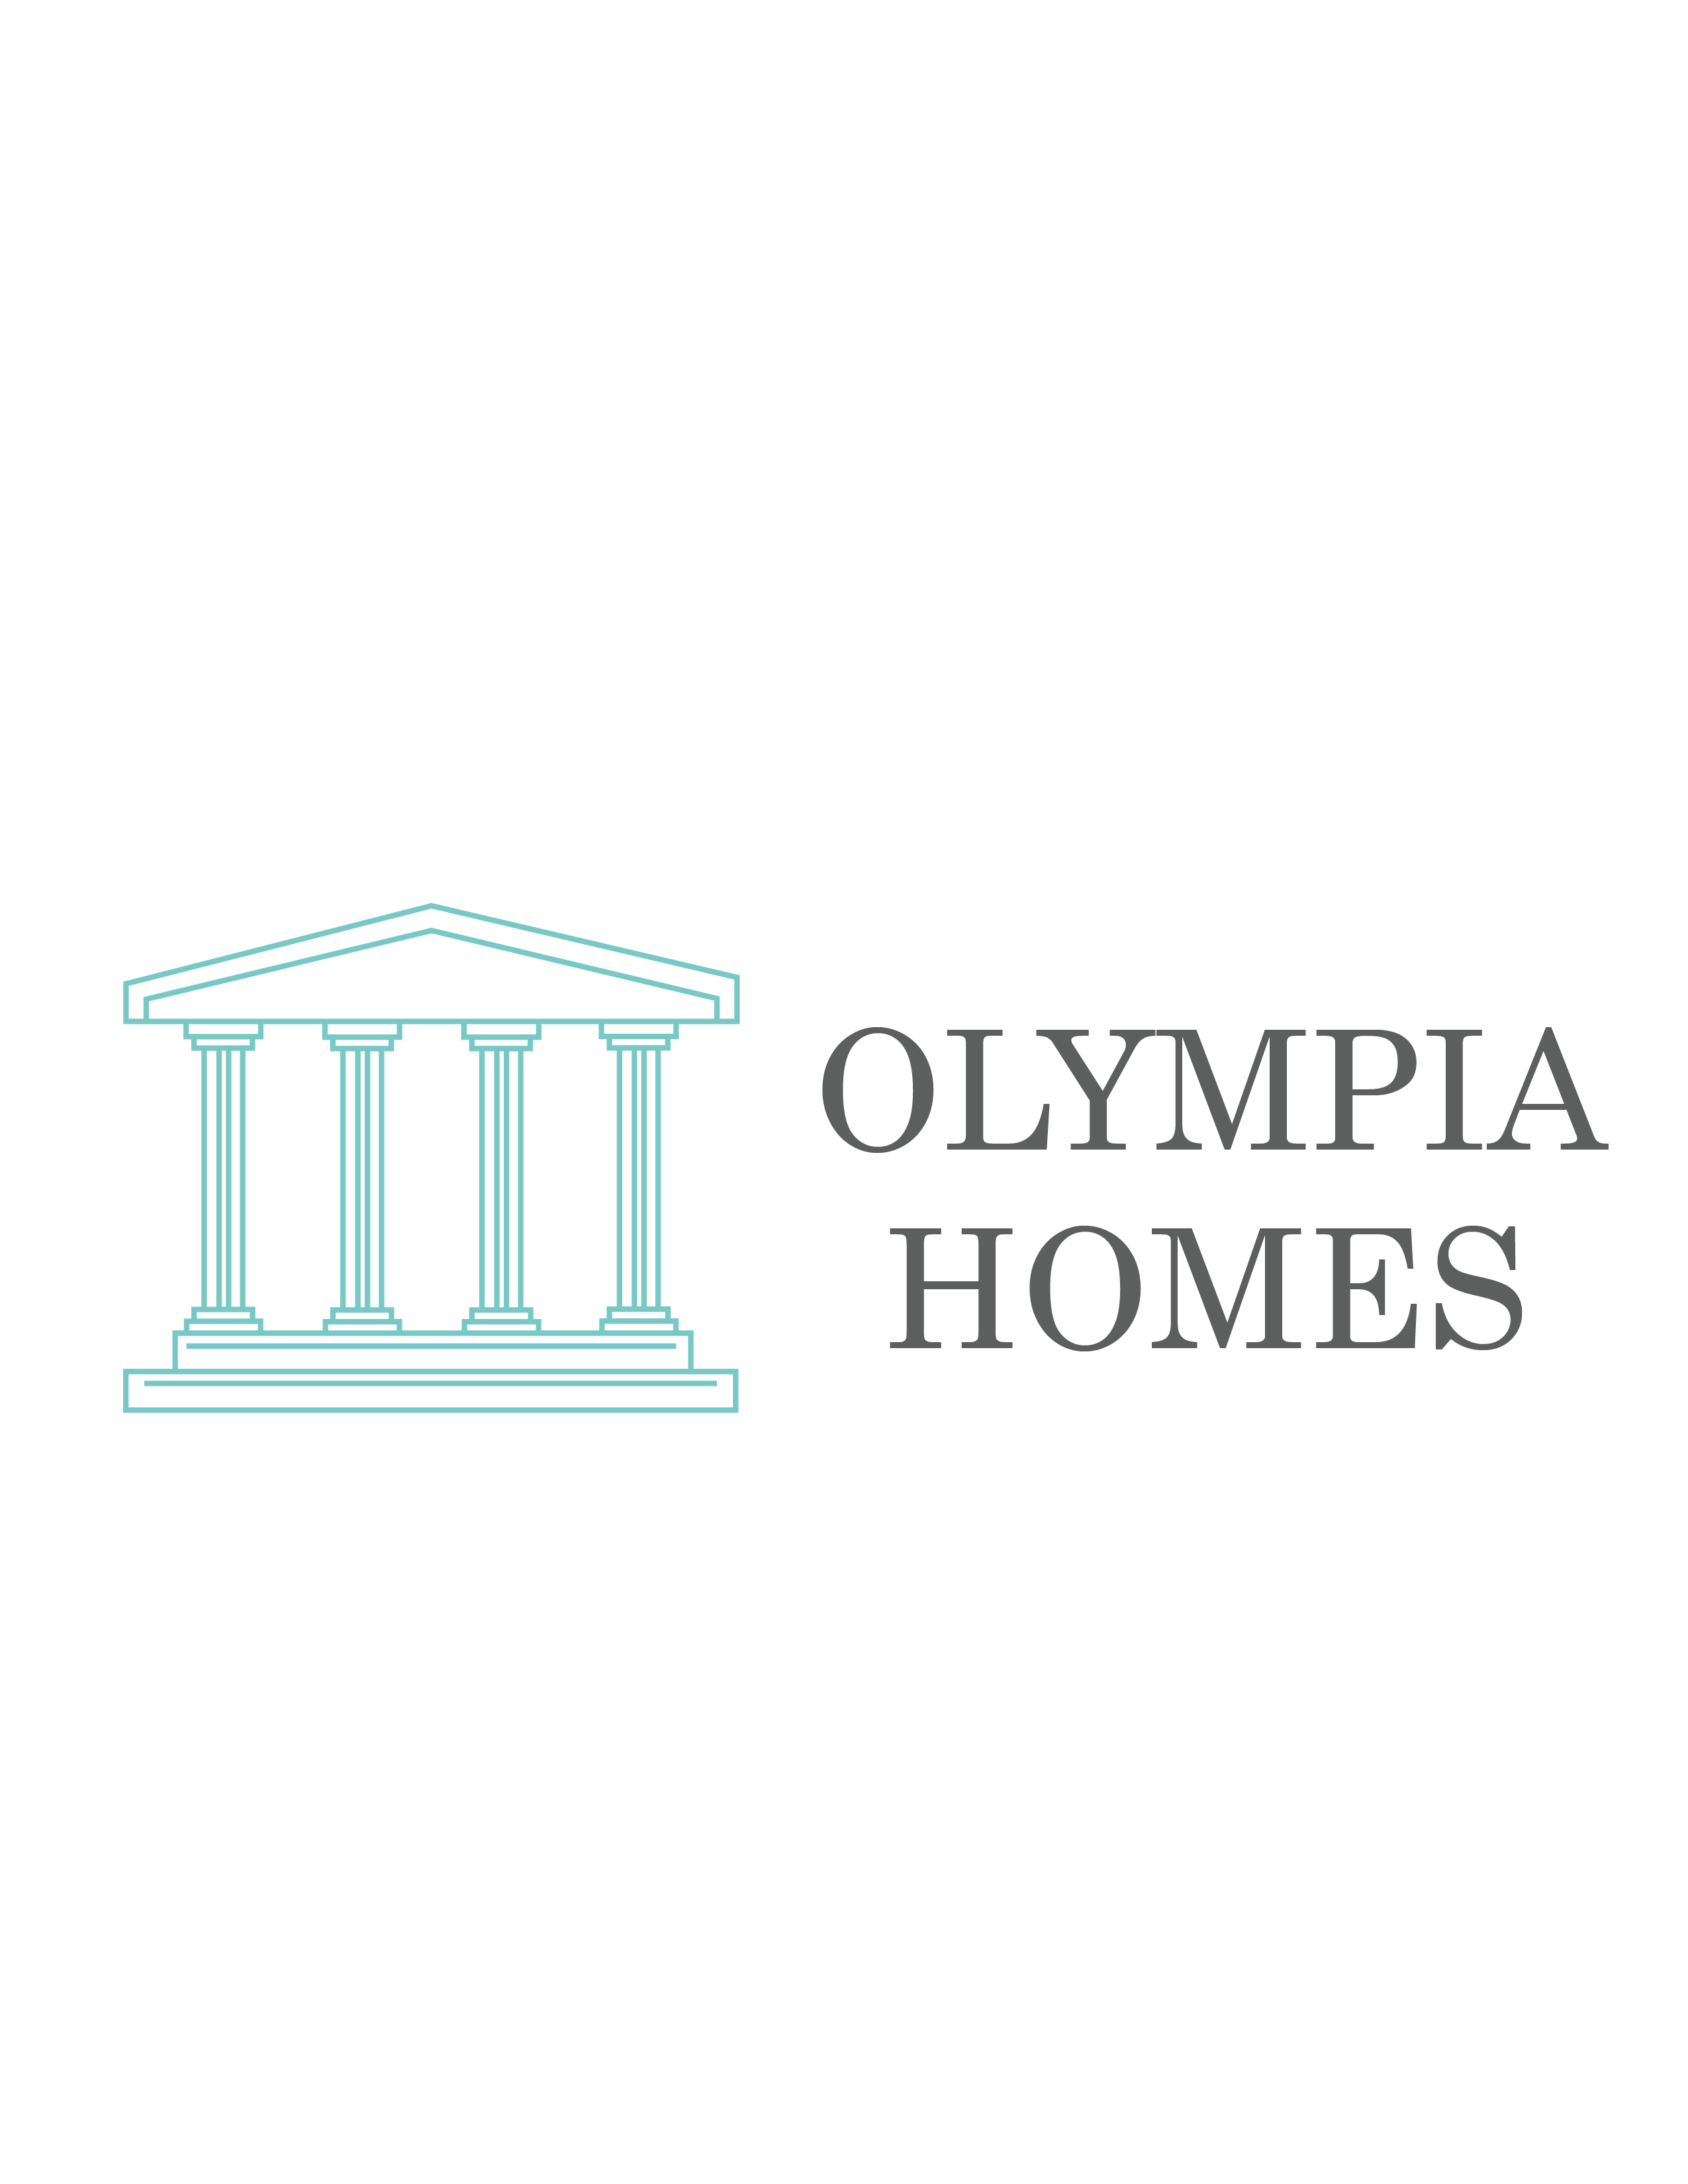 Olympia homes arnprior carleton place ottawa for Olympia home builders